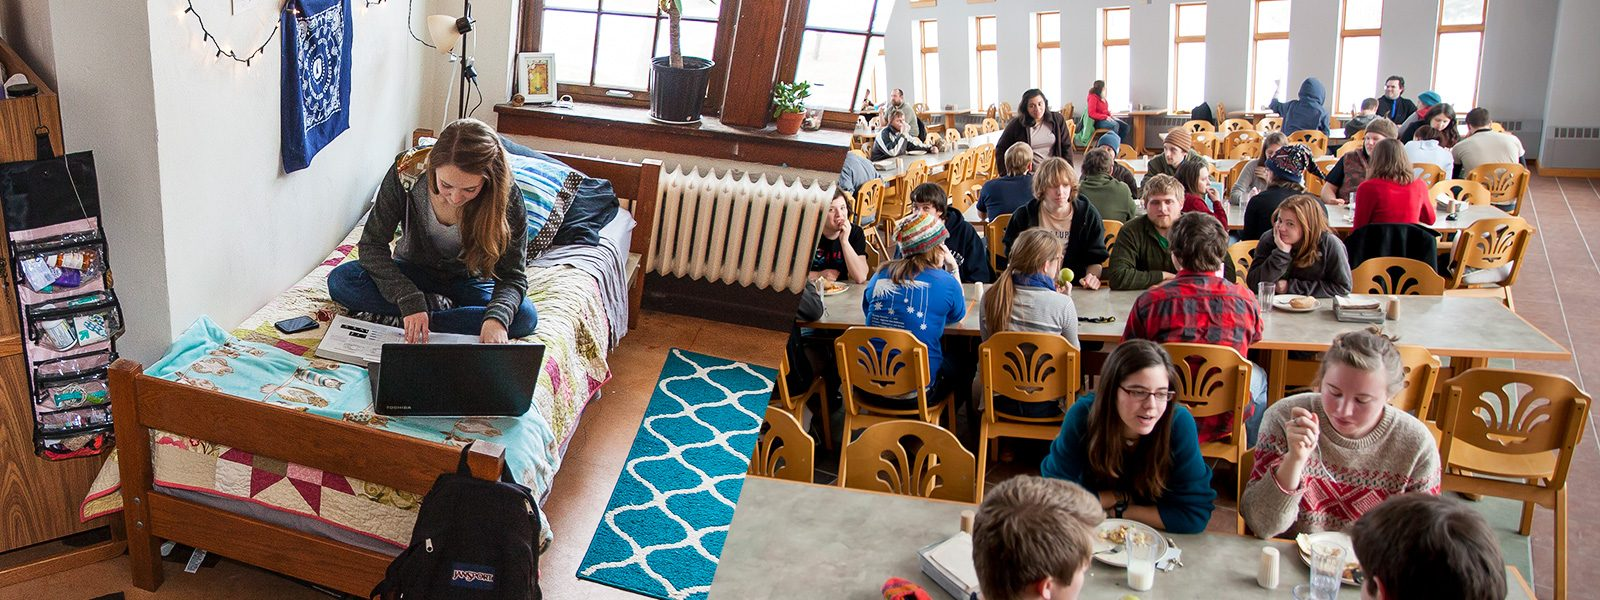 At left, a student studies on a bed in a residence hall room. At left, students gather for lunch in the cafeteria.